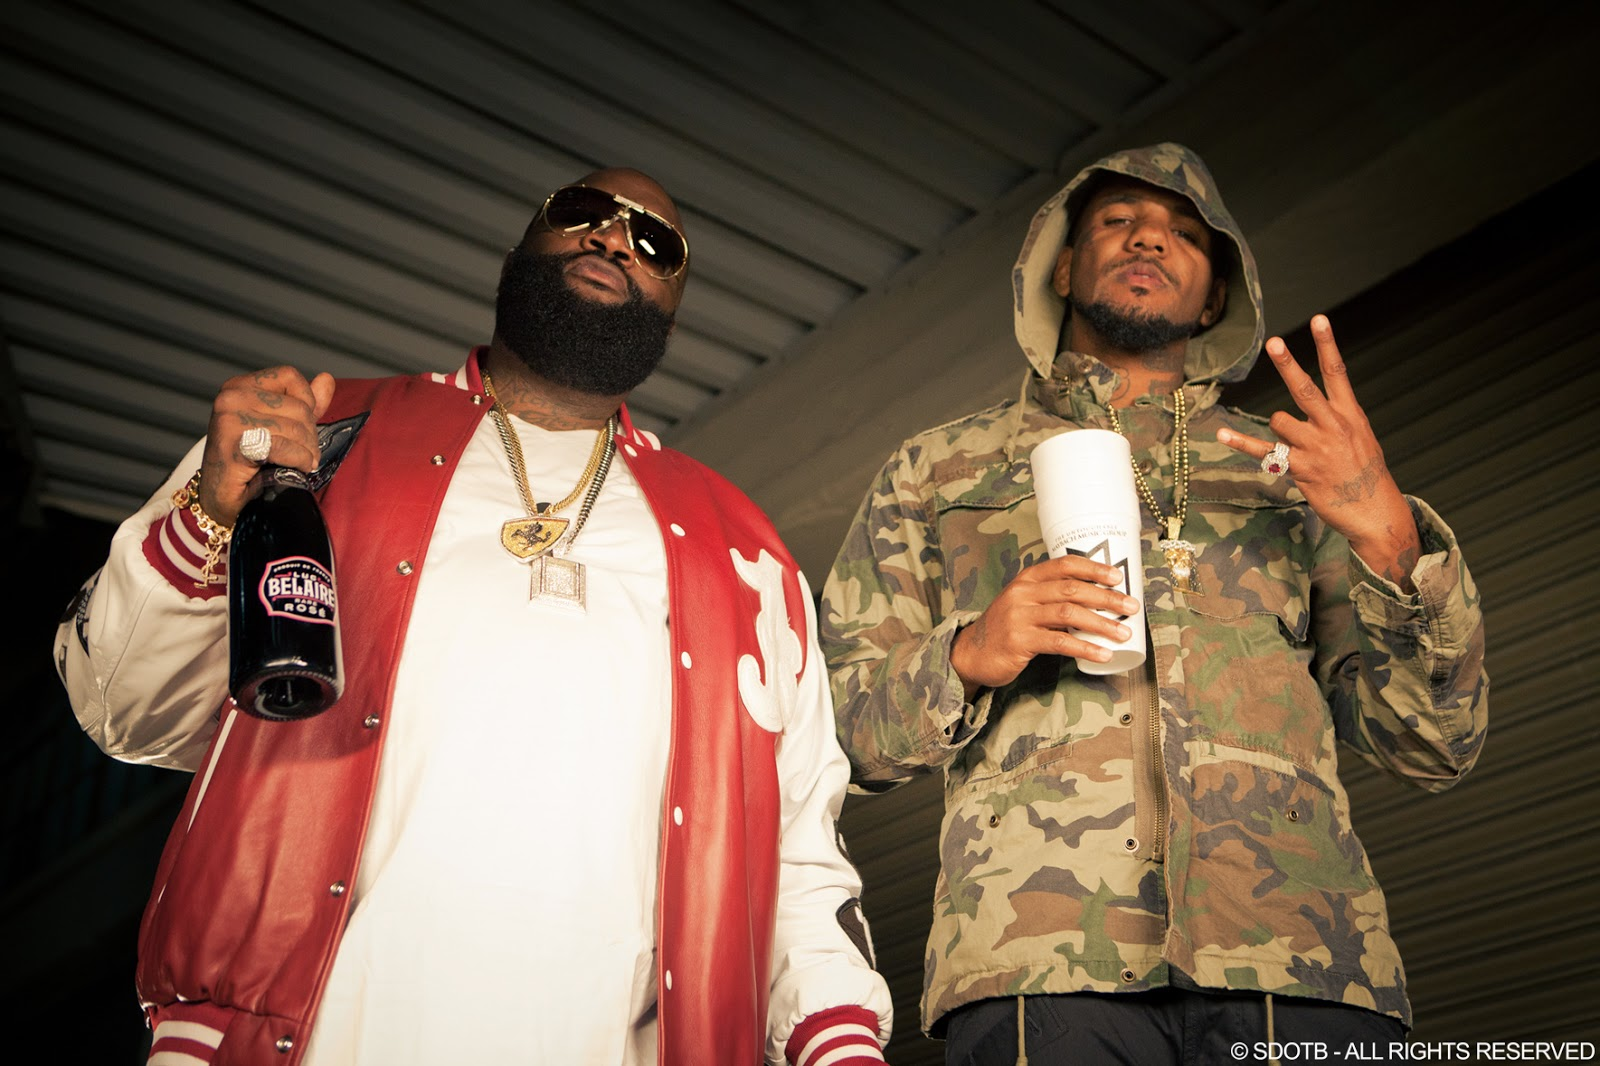 Joe Young feat. Rick Ross, The Game & K. Young – Do It All